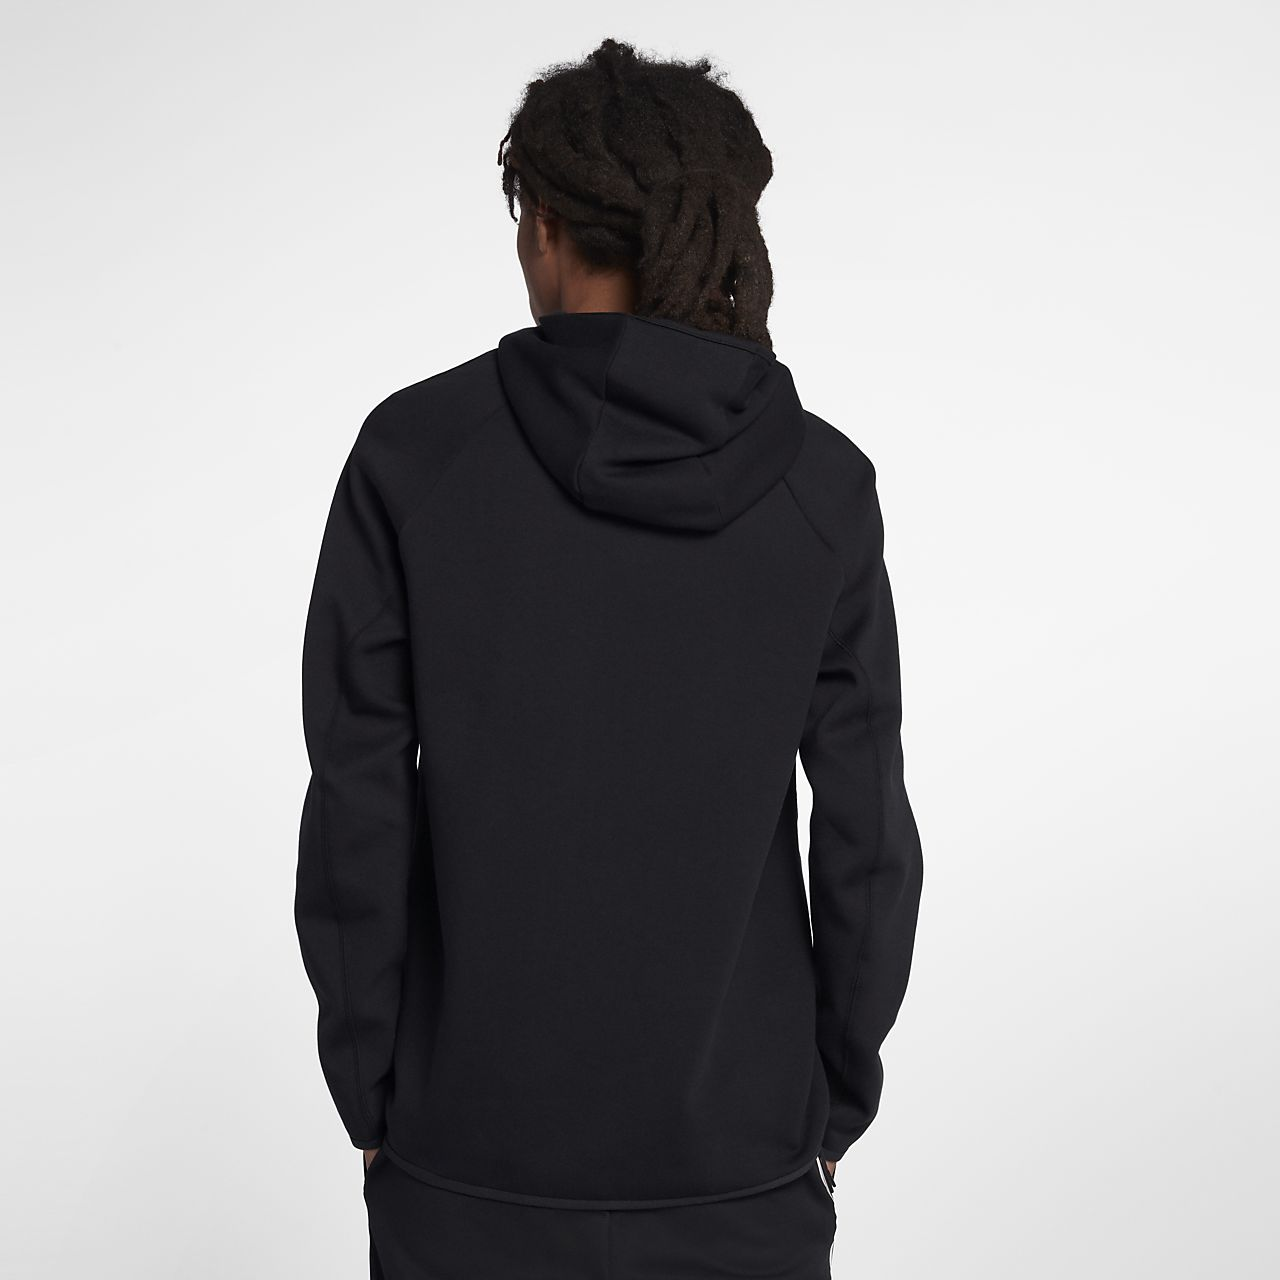 661fcb7dbe5 Nike Sportswear Tech Fleece Men's Pullover Hoodie. Nike.com GB